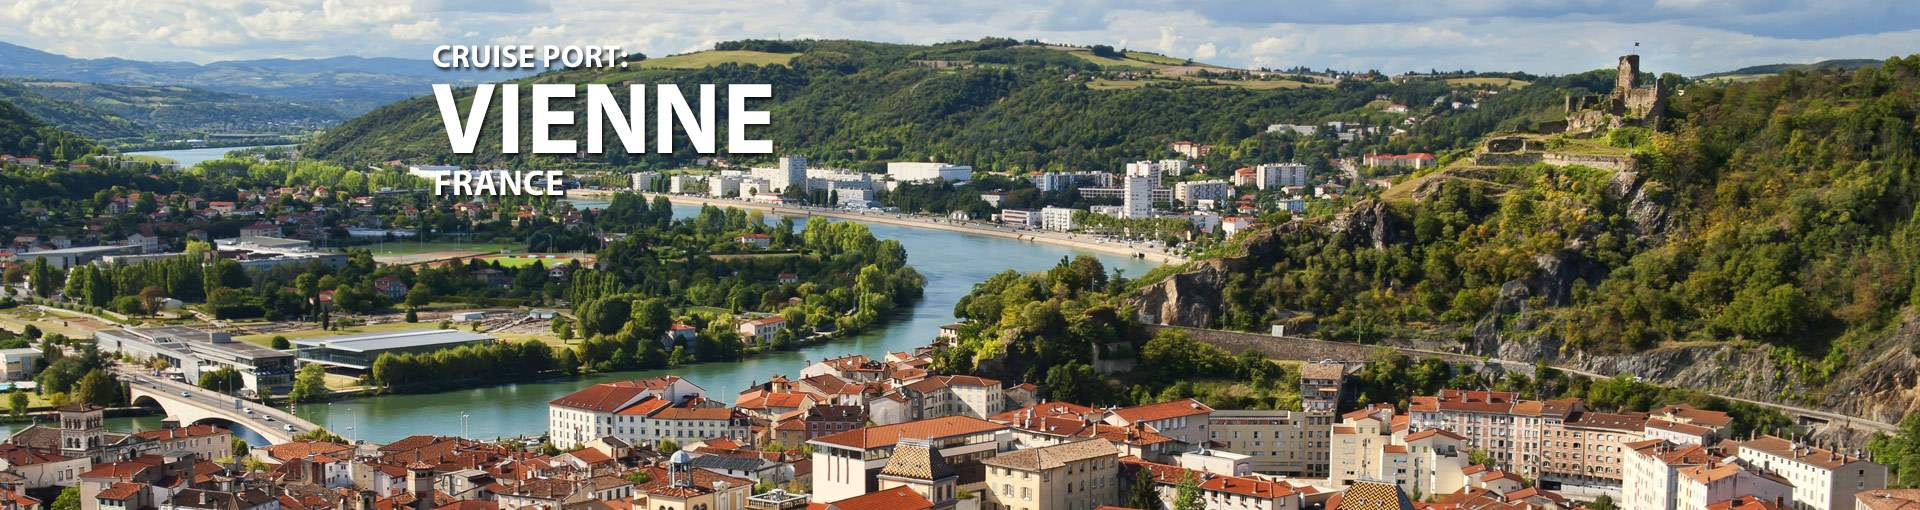 Cruises from Vienne, France